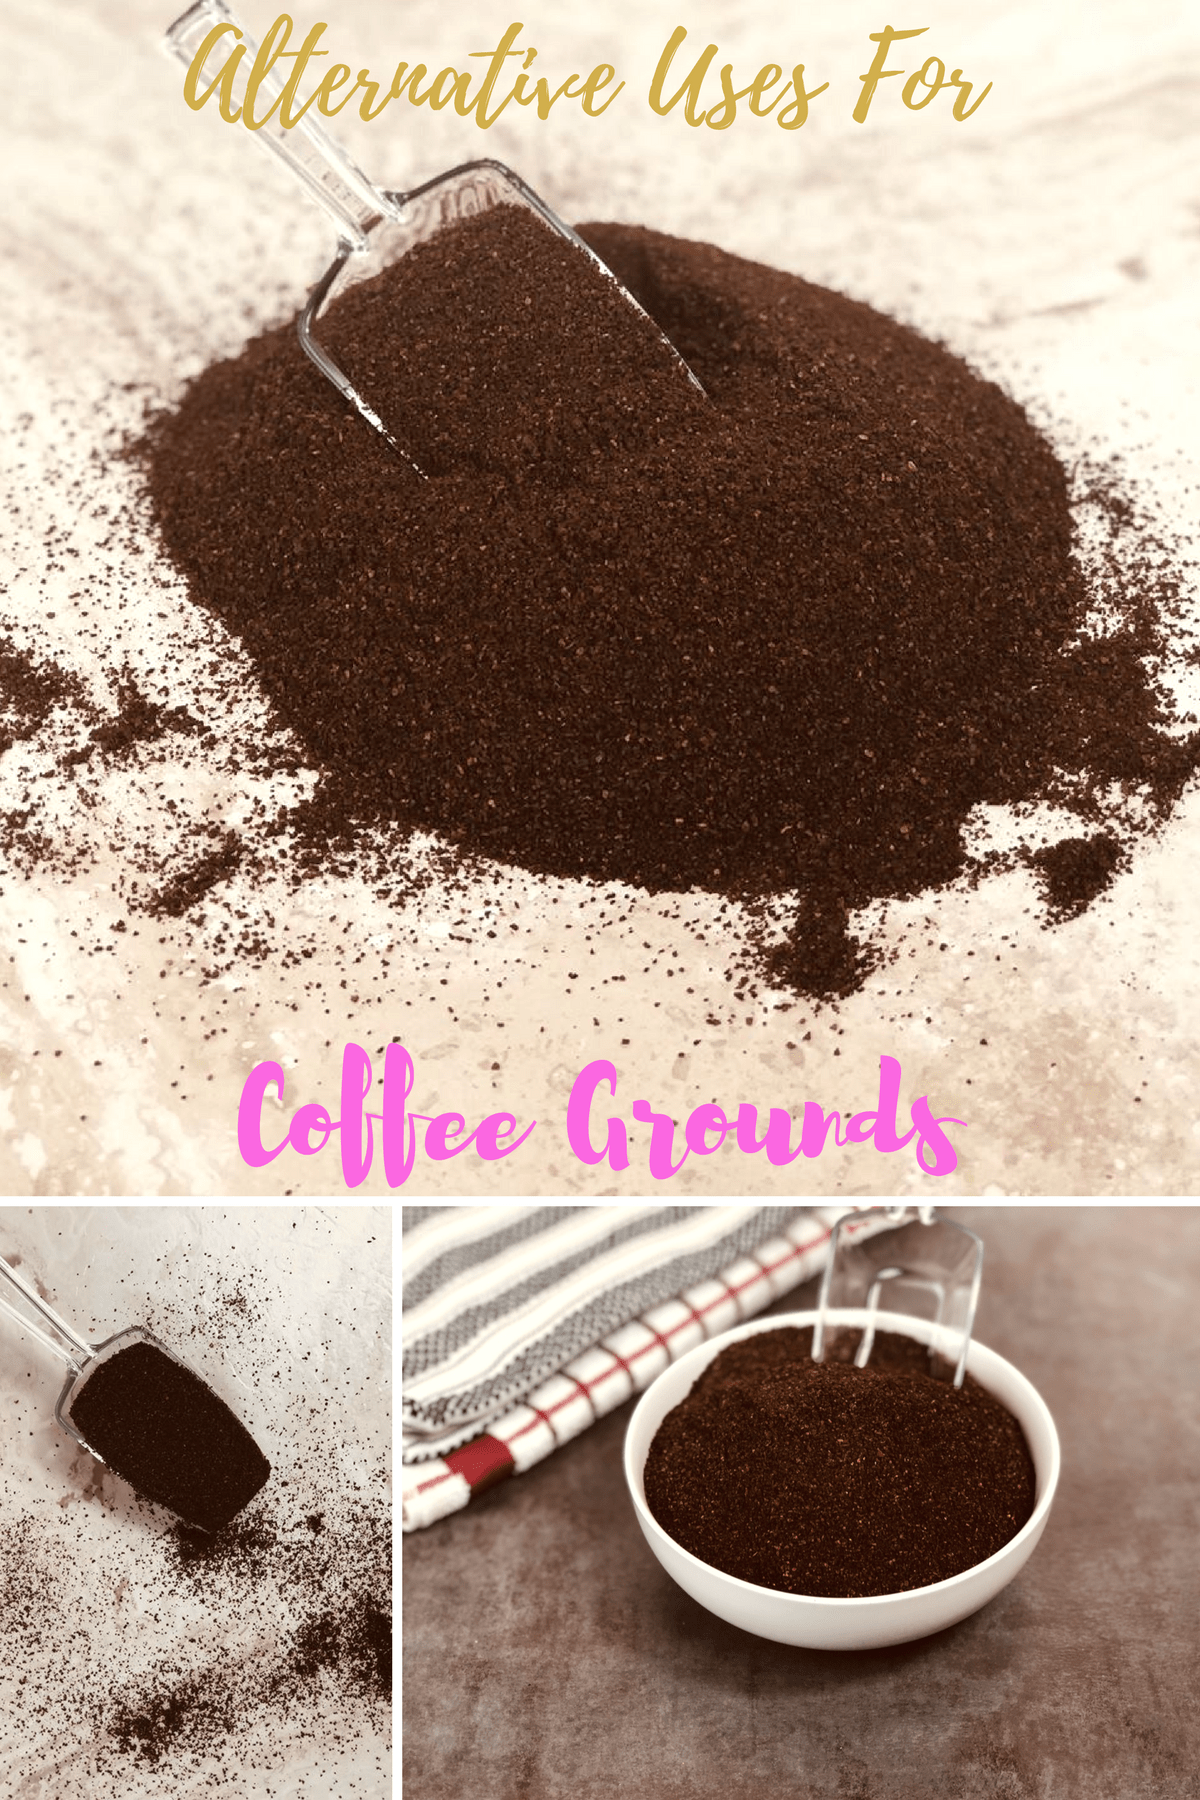 Coffee is great for giving you that energy boost to start your day, but it is also useful in the home as well. #coffee #coffeelovers #repurposed #reuse #recycled #alternativeuses #thrifty #frugal #frugalliving